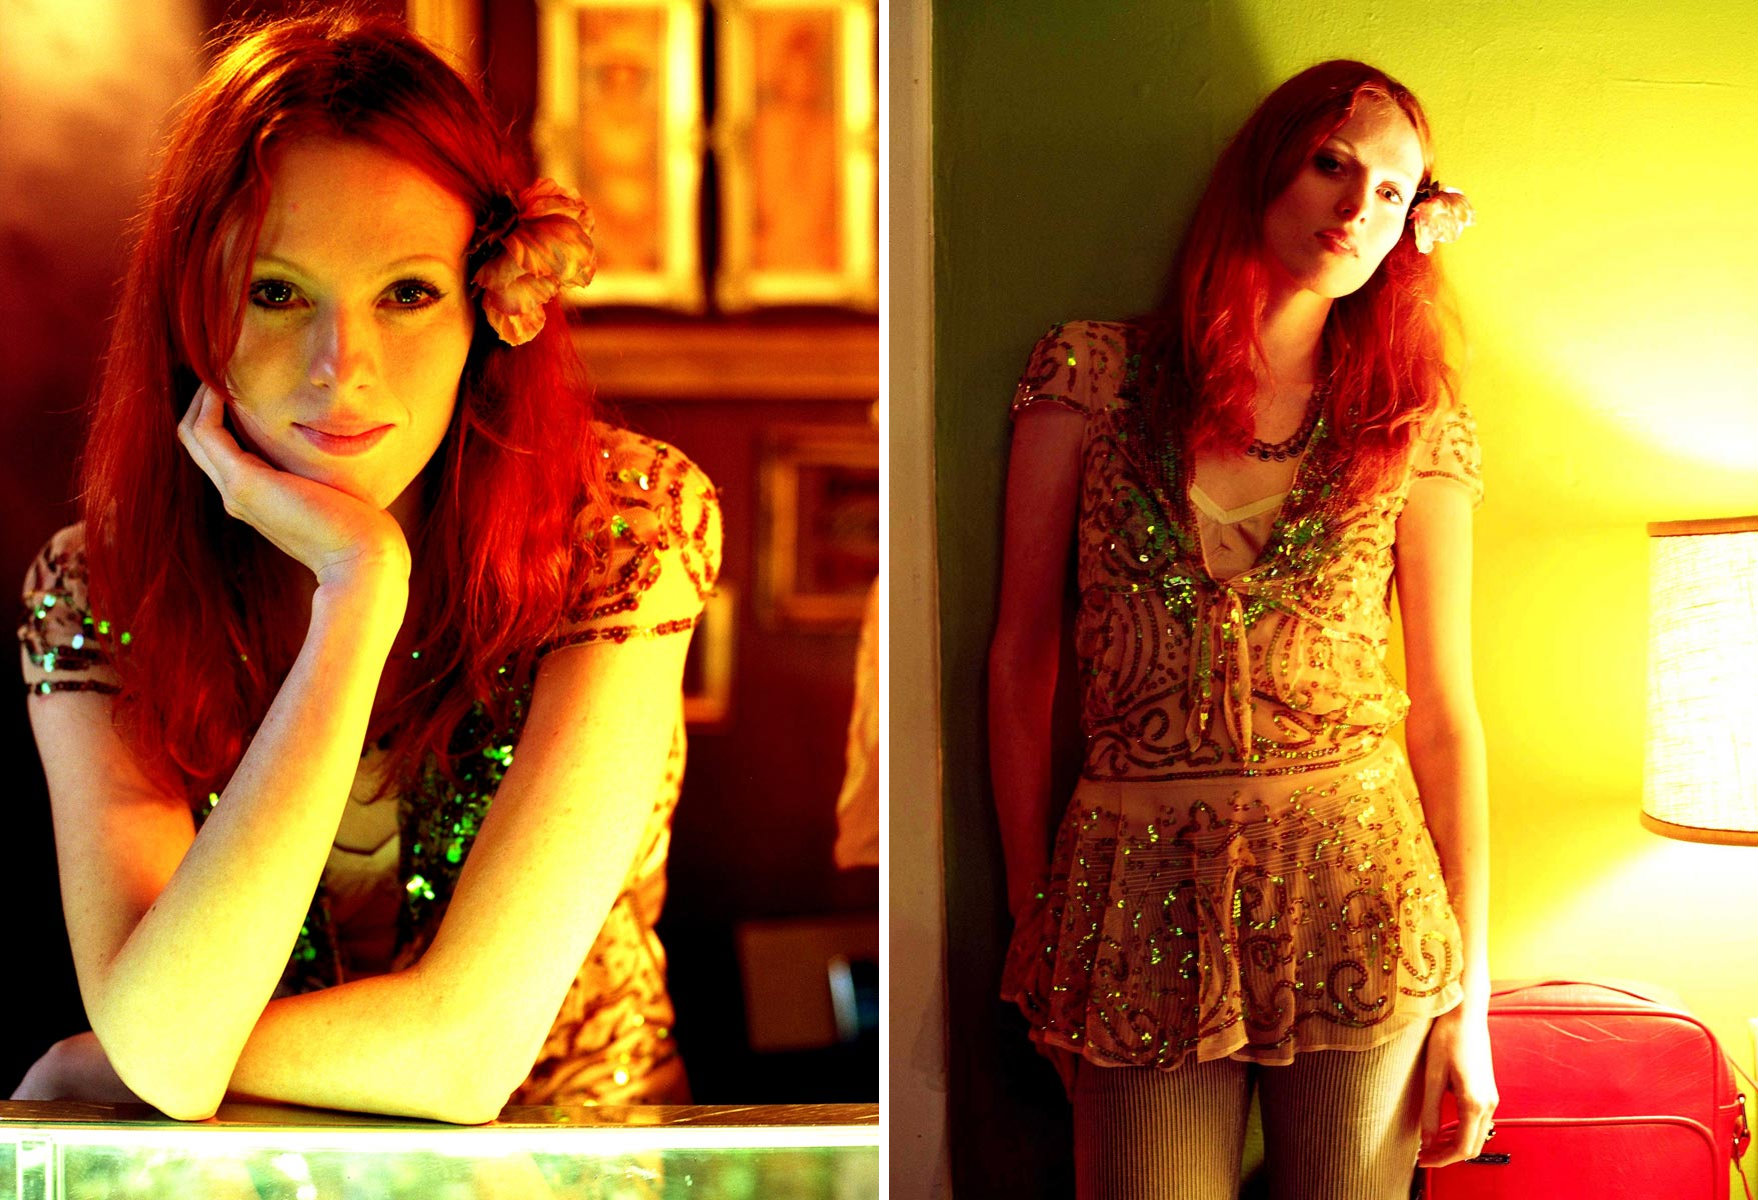 Karen Elson for Blackbook